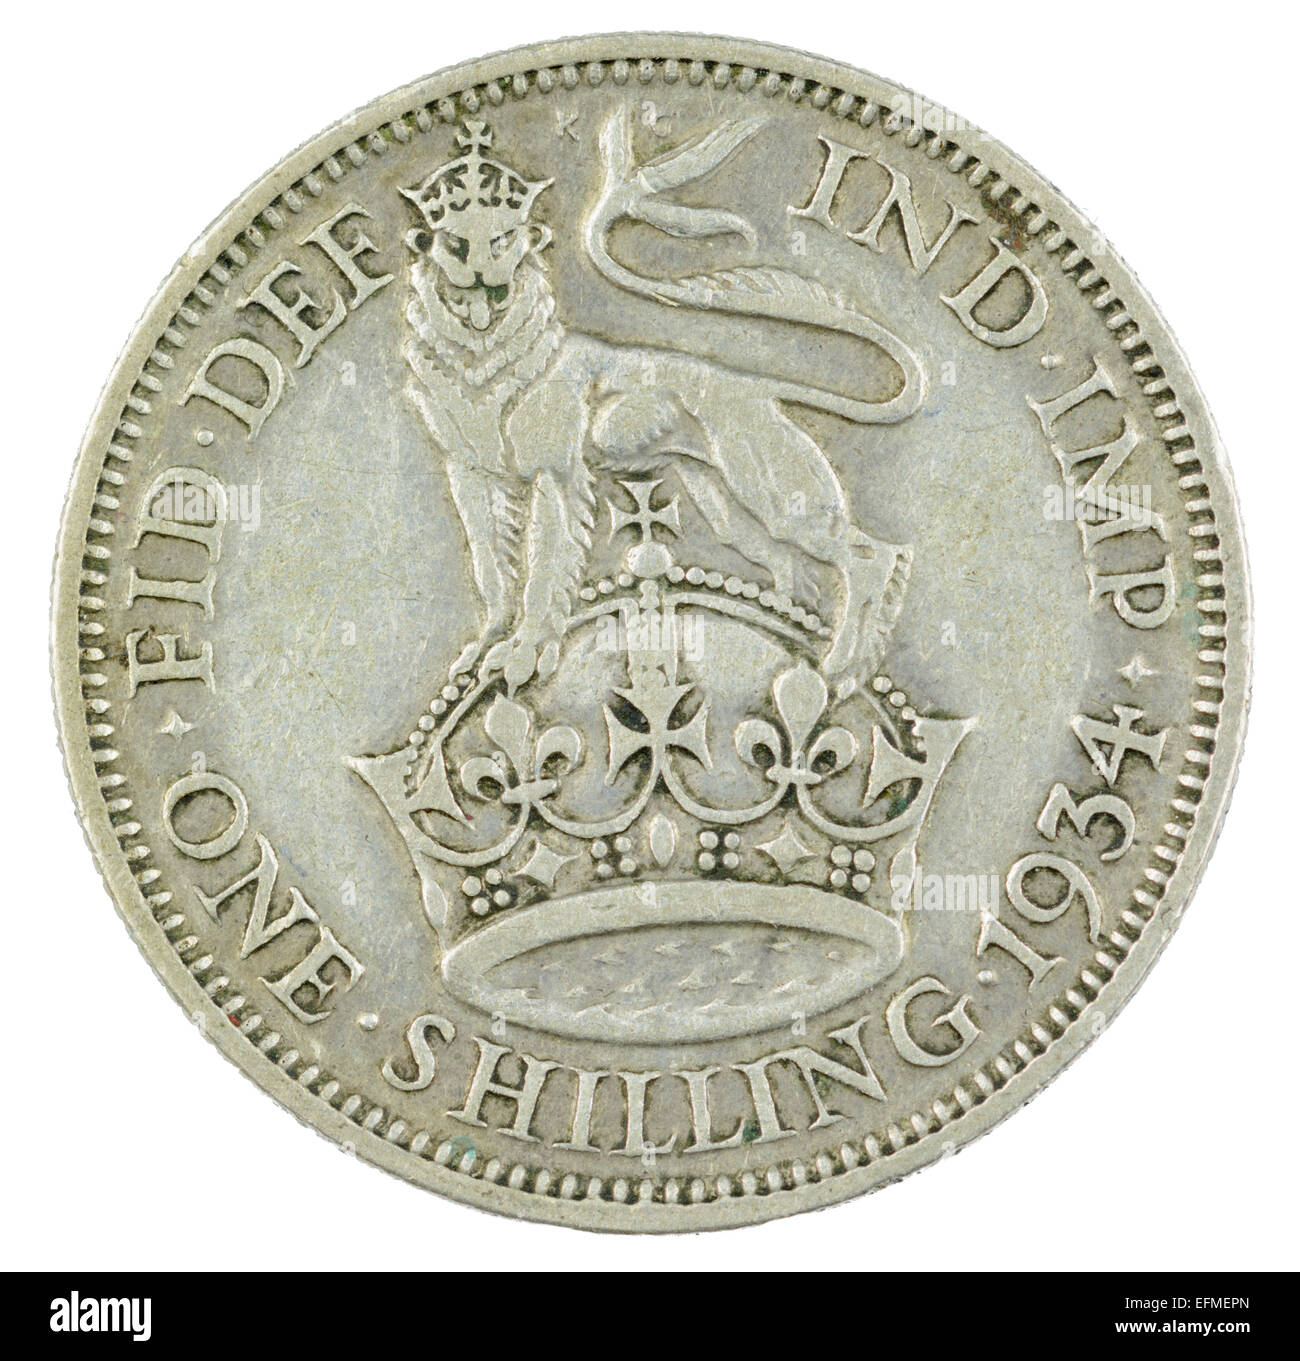 Shilling coin from King George V reign (1934 English version, tails side). Stock Photo